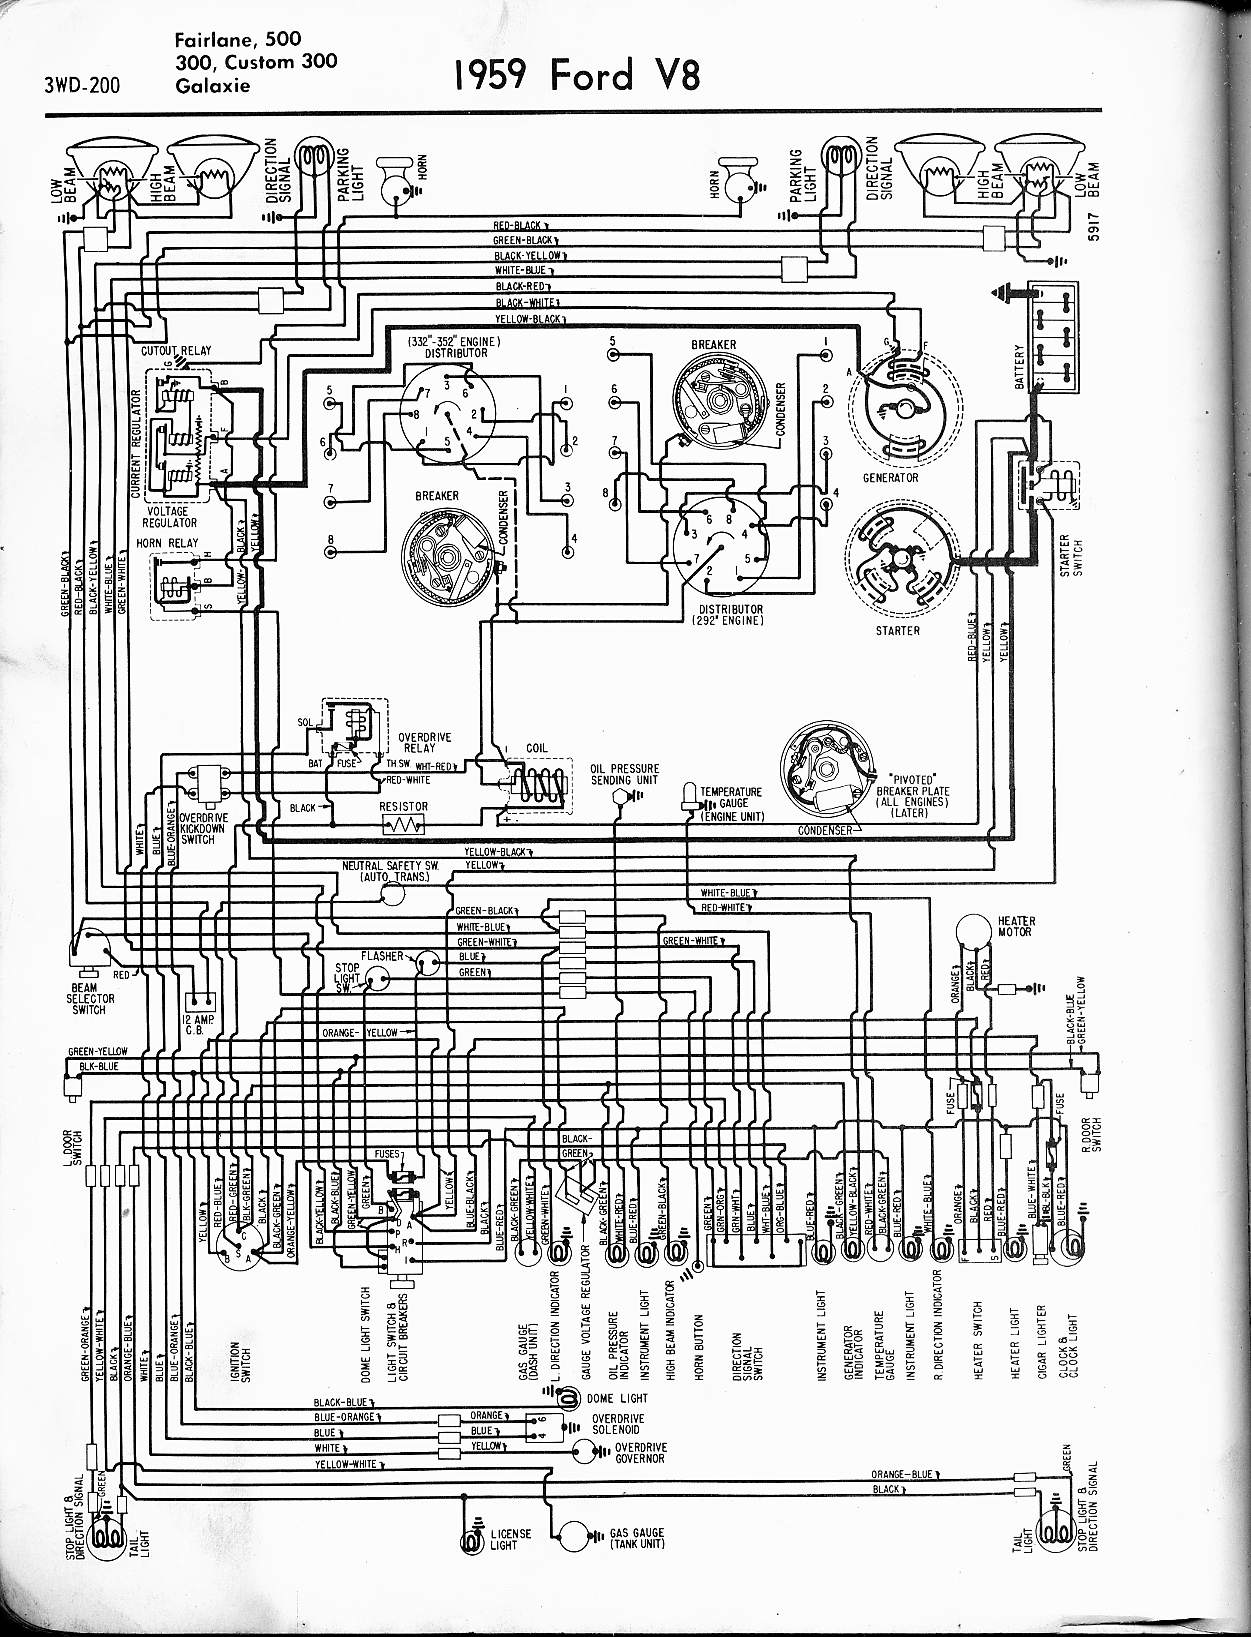 1959 ford f100 headlight switch wiring schematic wiring diagram 1961 Ford F100 Radiator